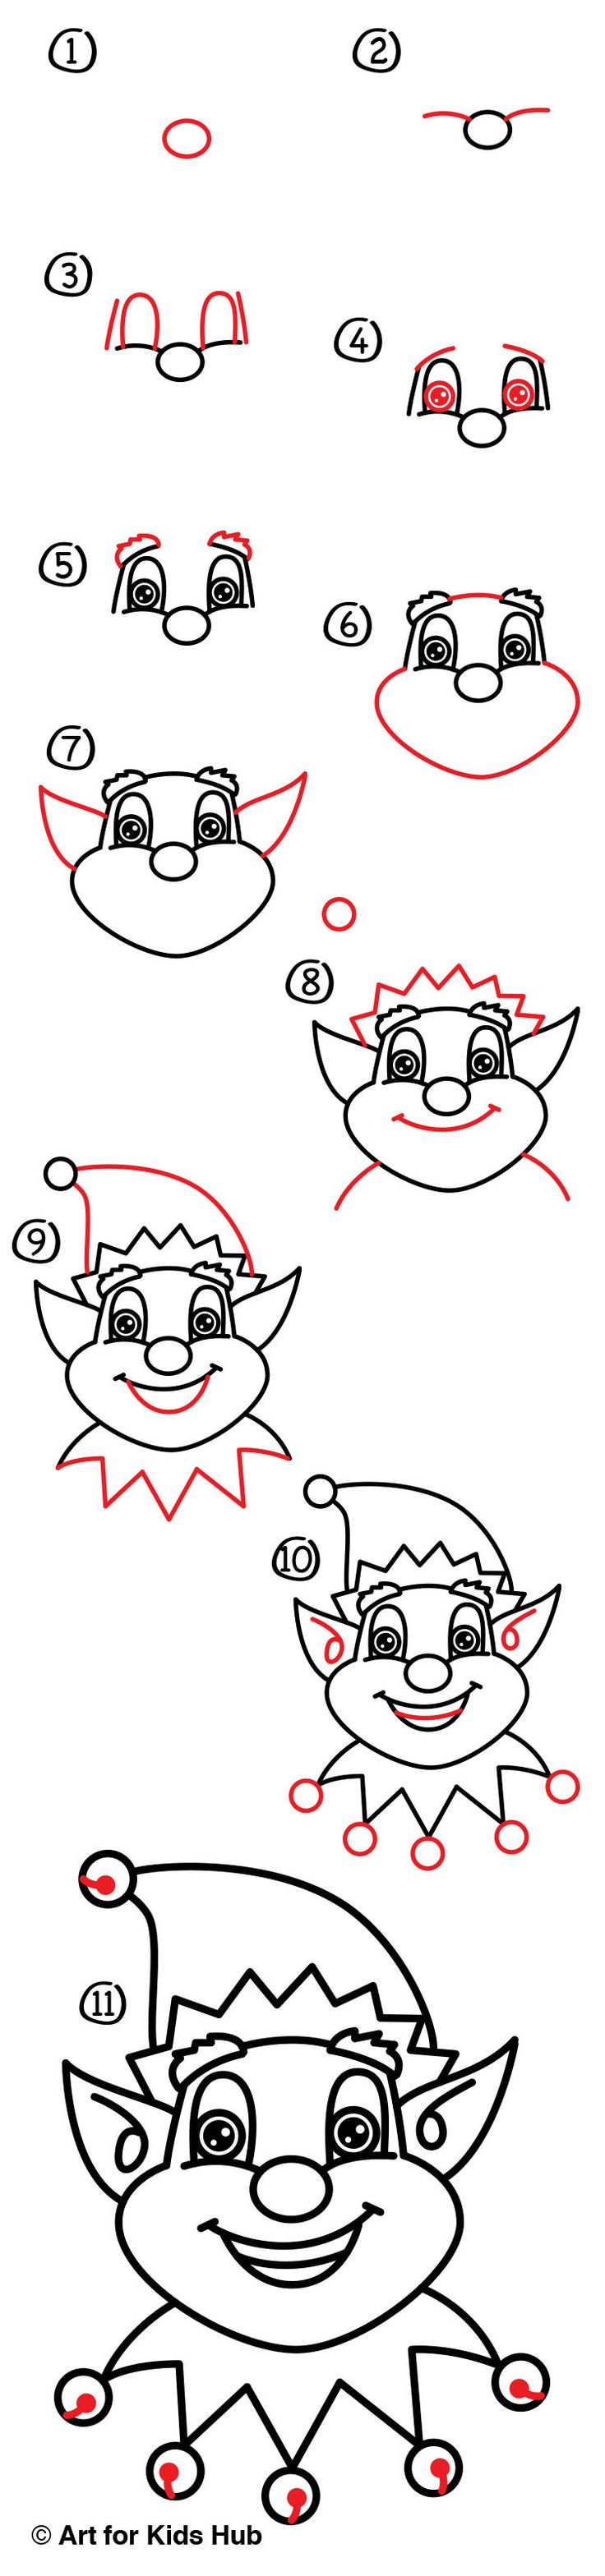 Christmas is almost here, learn how to draw a Christmas elf face! Follow along and learn how to draw your own Santa's helper.